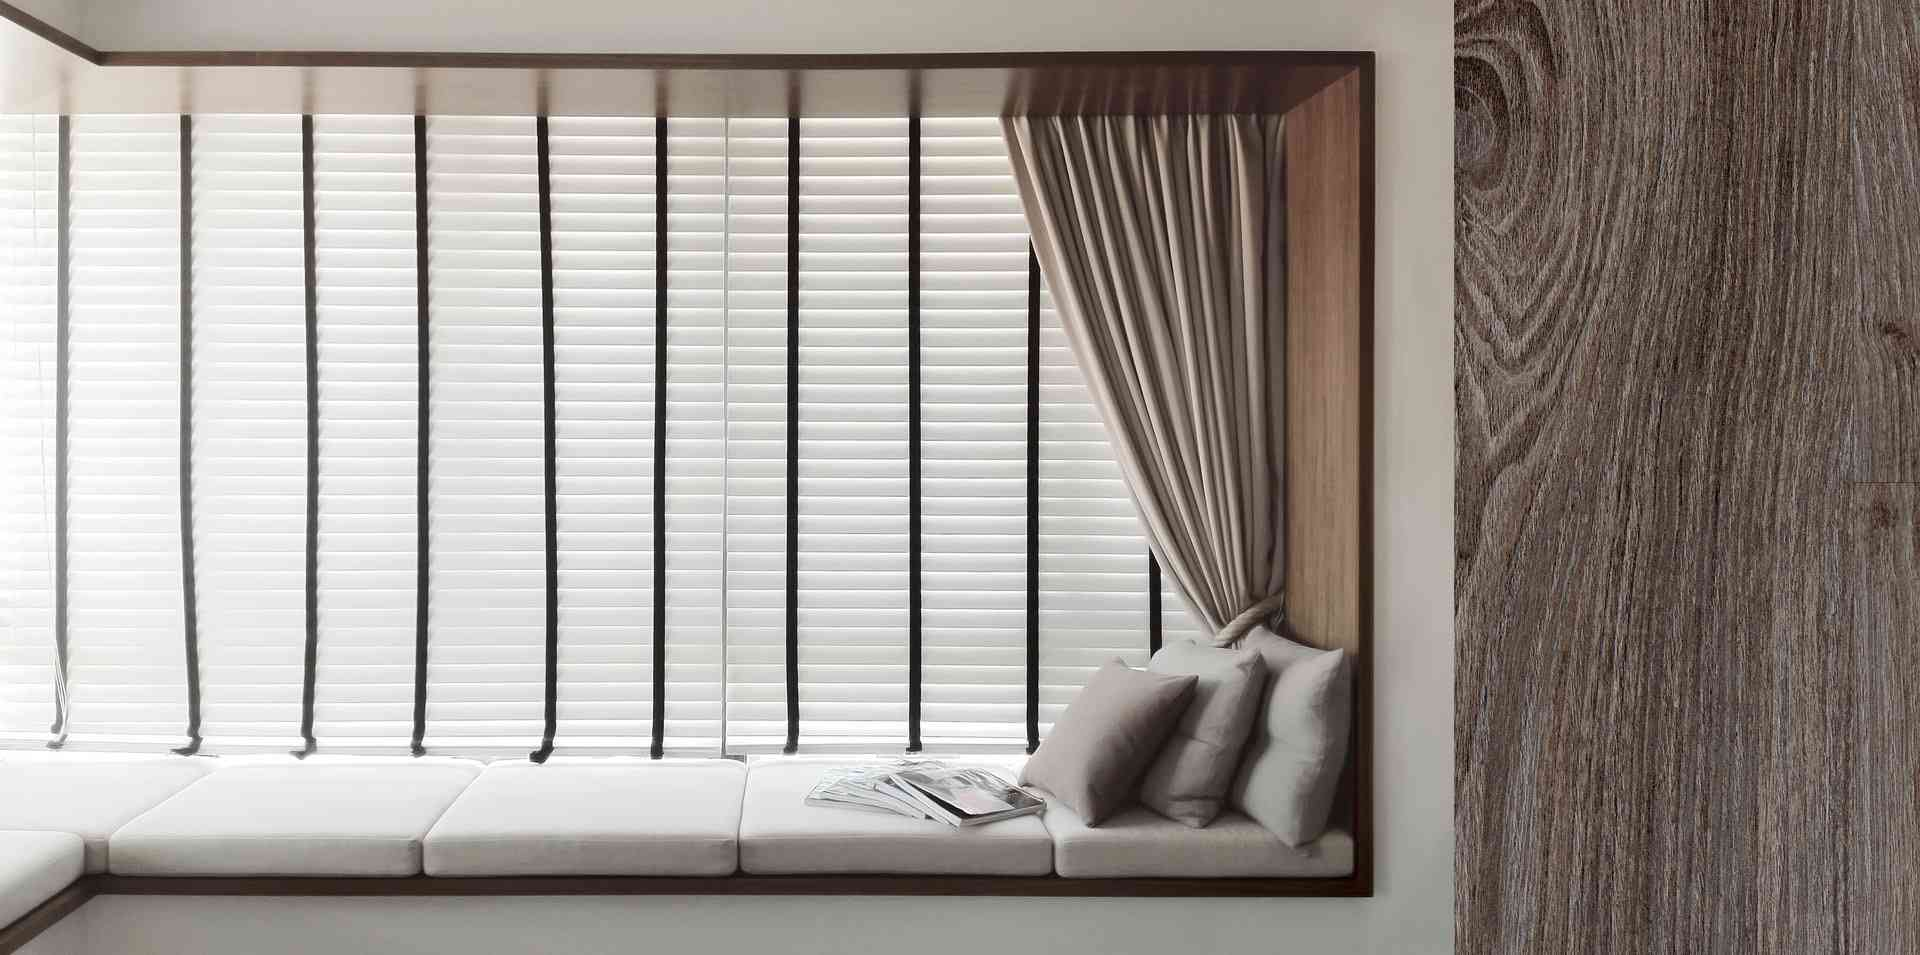 7649curtains-and-blinds-singapore-the-finishing-line-pte-ltd.jpg